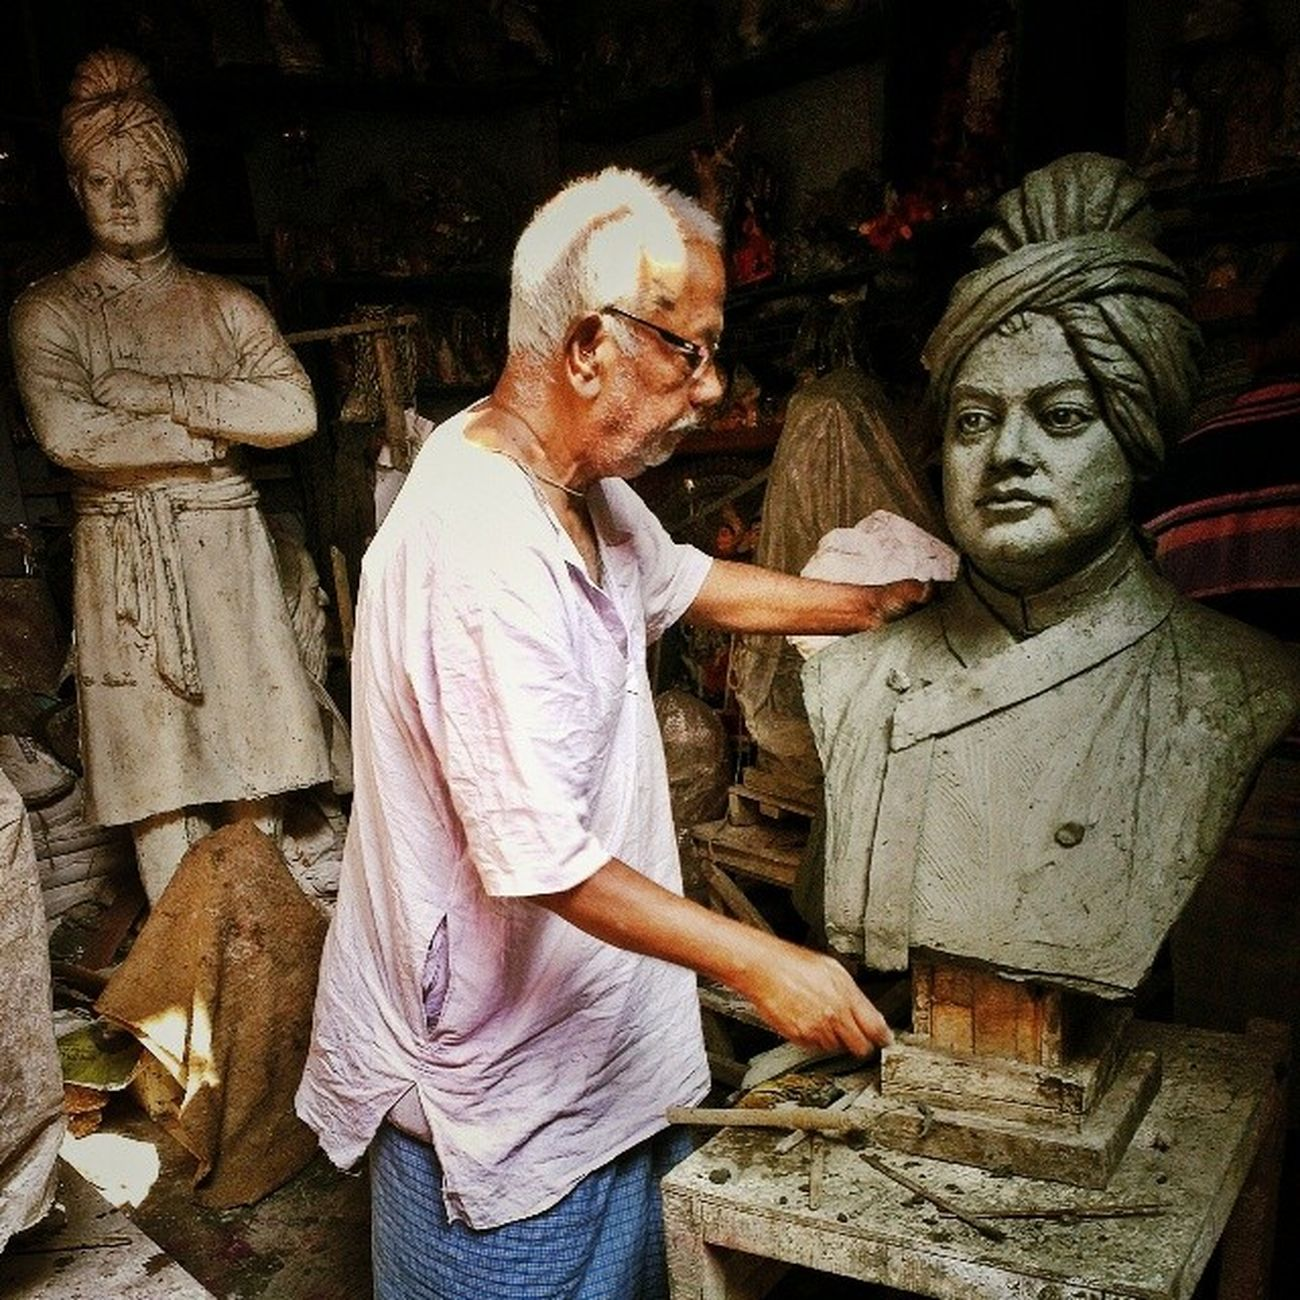 The master craftsman at work in Kumartuli on the Goddess Beckons Tour. It is really humbling to see him work. A lifetime's experience in every deft move he makes. Incrediblecalcutta GoddessBeckonsTour Artisans clay Calcutta calcuttaphototours vivekananda